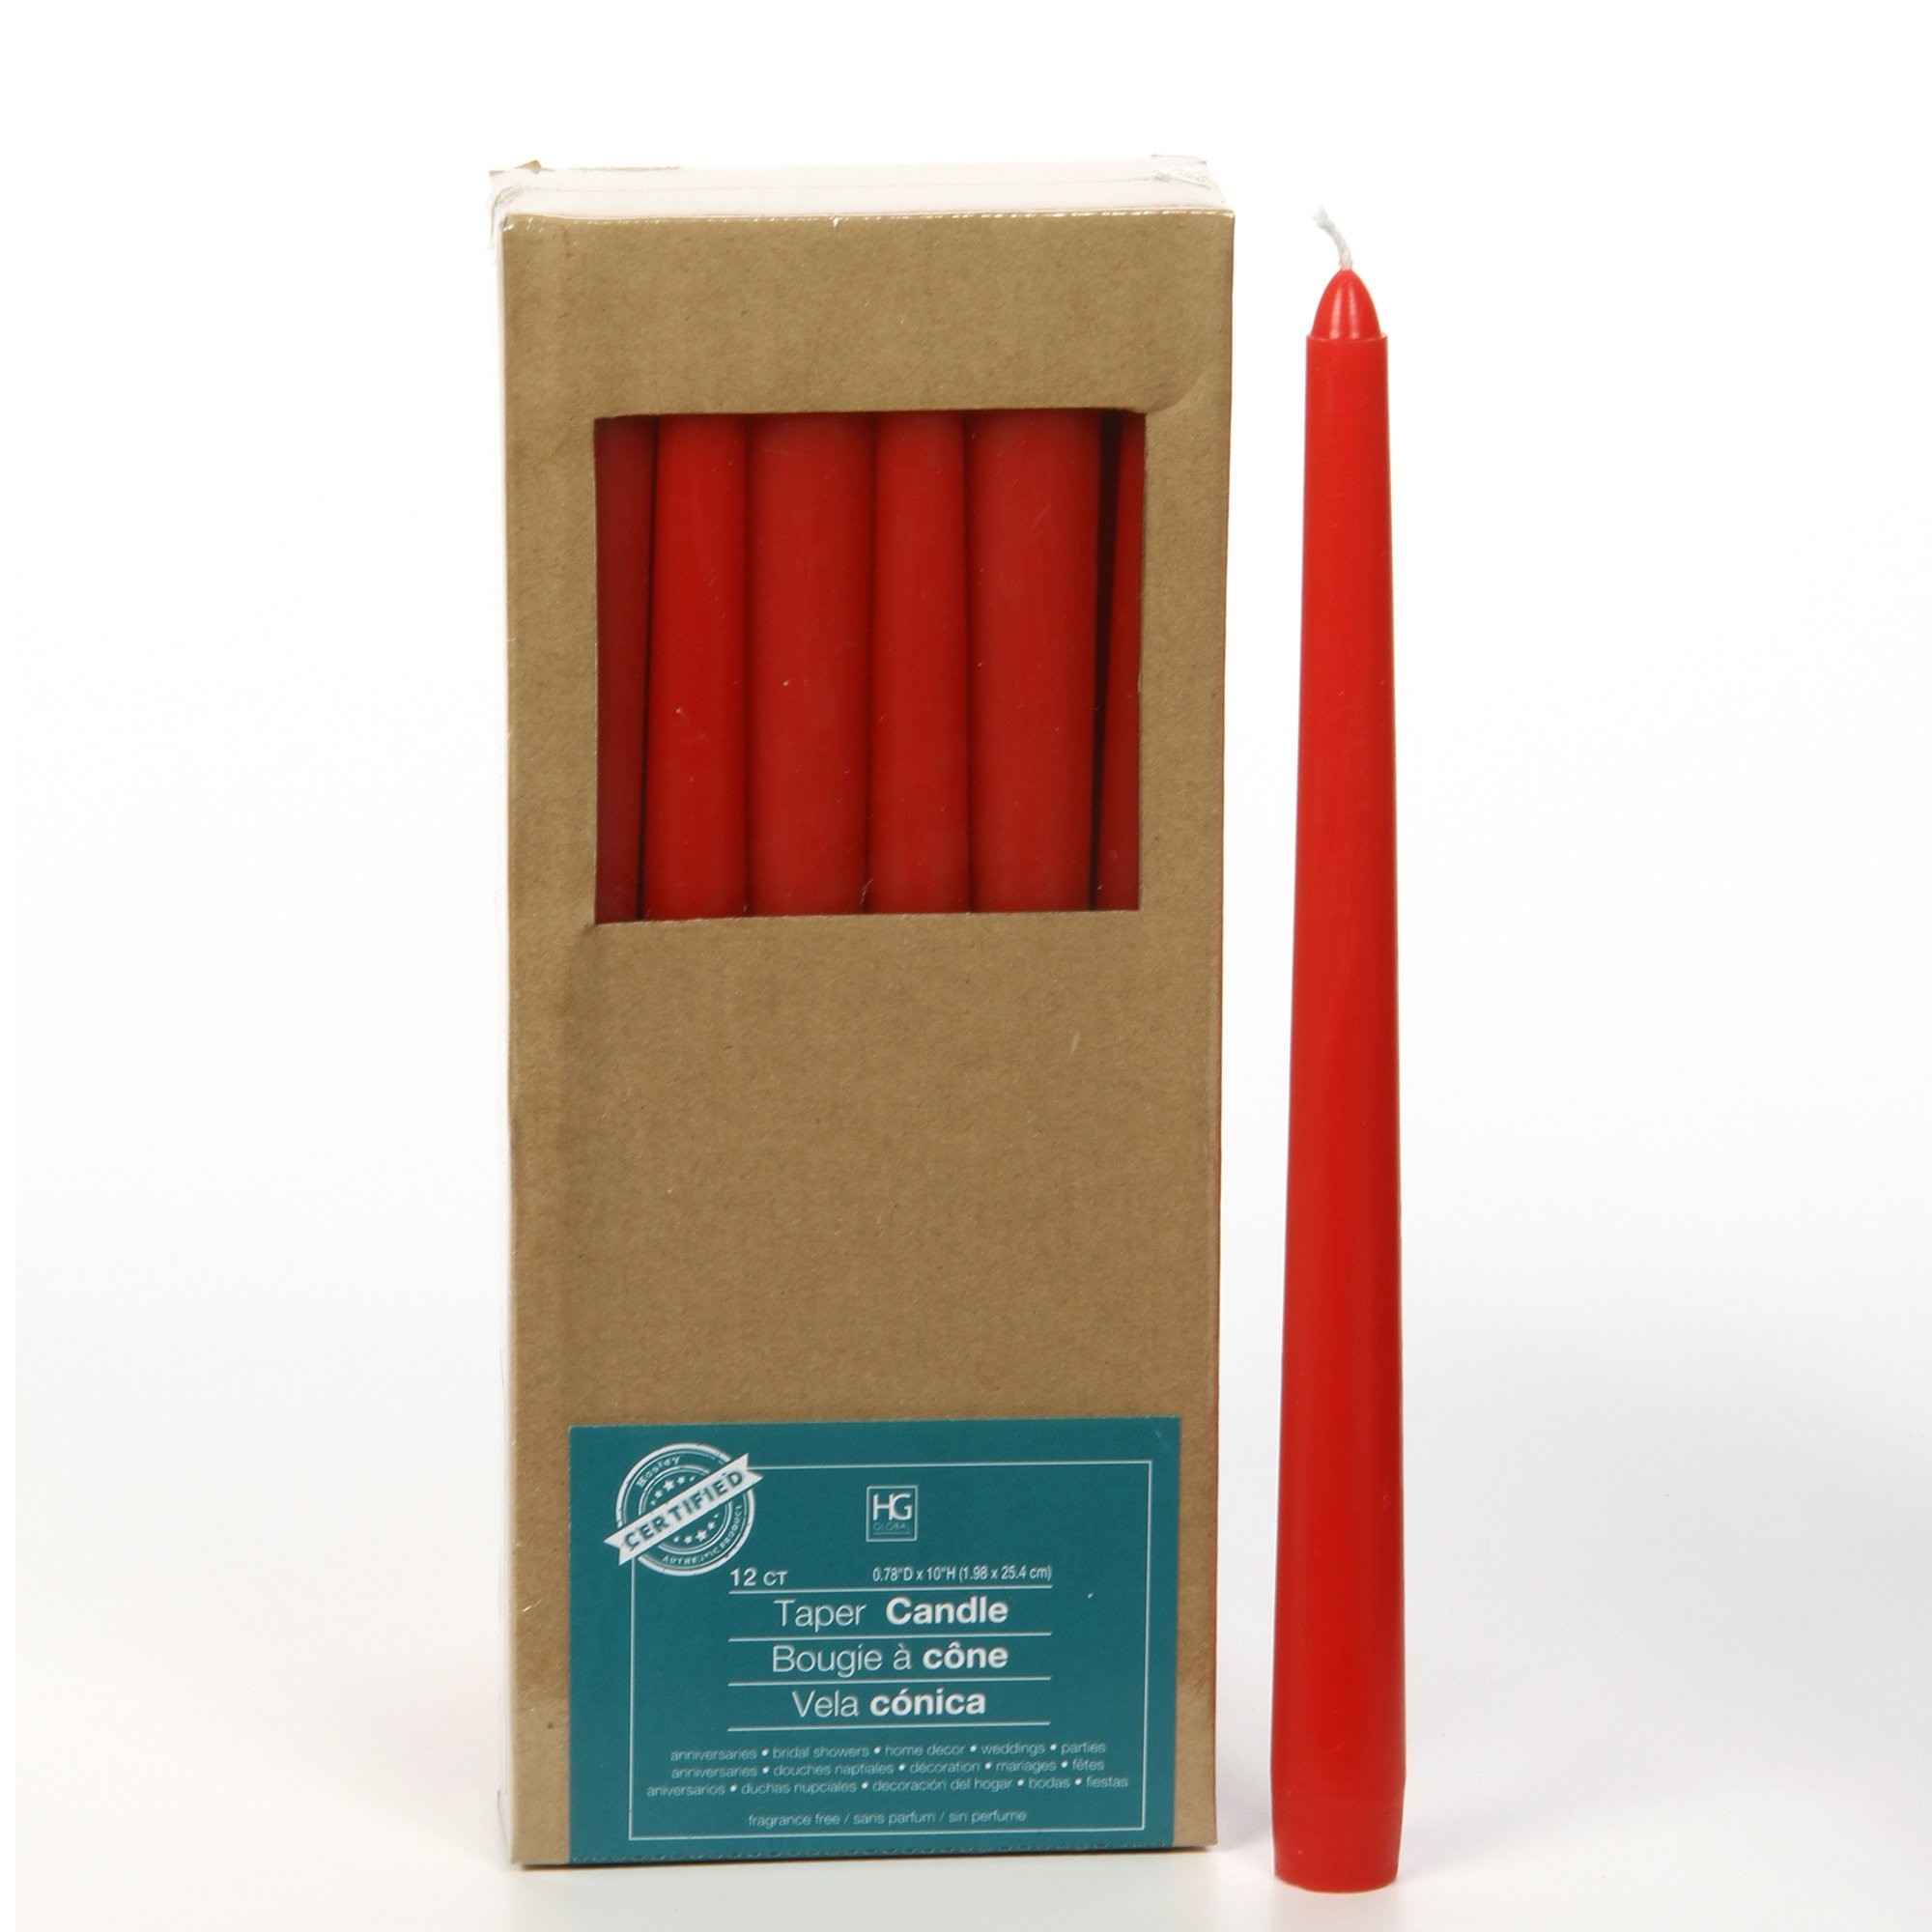 Hosley Set of 12 Red Unscented Taper Candles, 10'' High. Bulk Buy, using Wax Blend. Ideal for Wedding, Emergency Lanterns, Spa, Aromatherapy, Party, Reiki, Church, Vigil O4